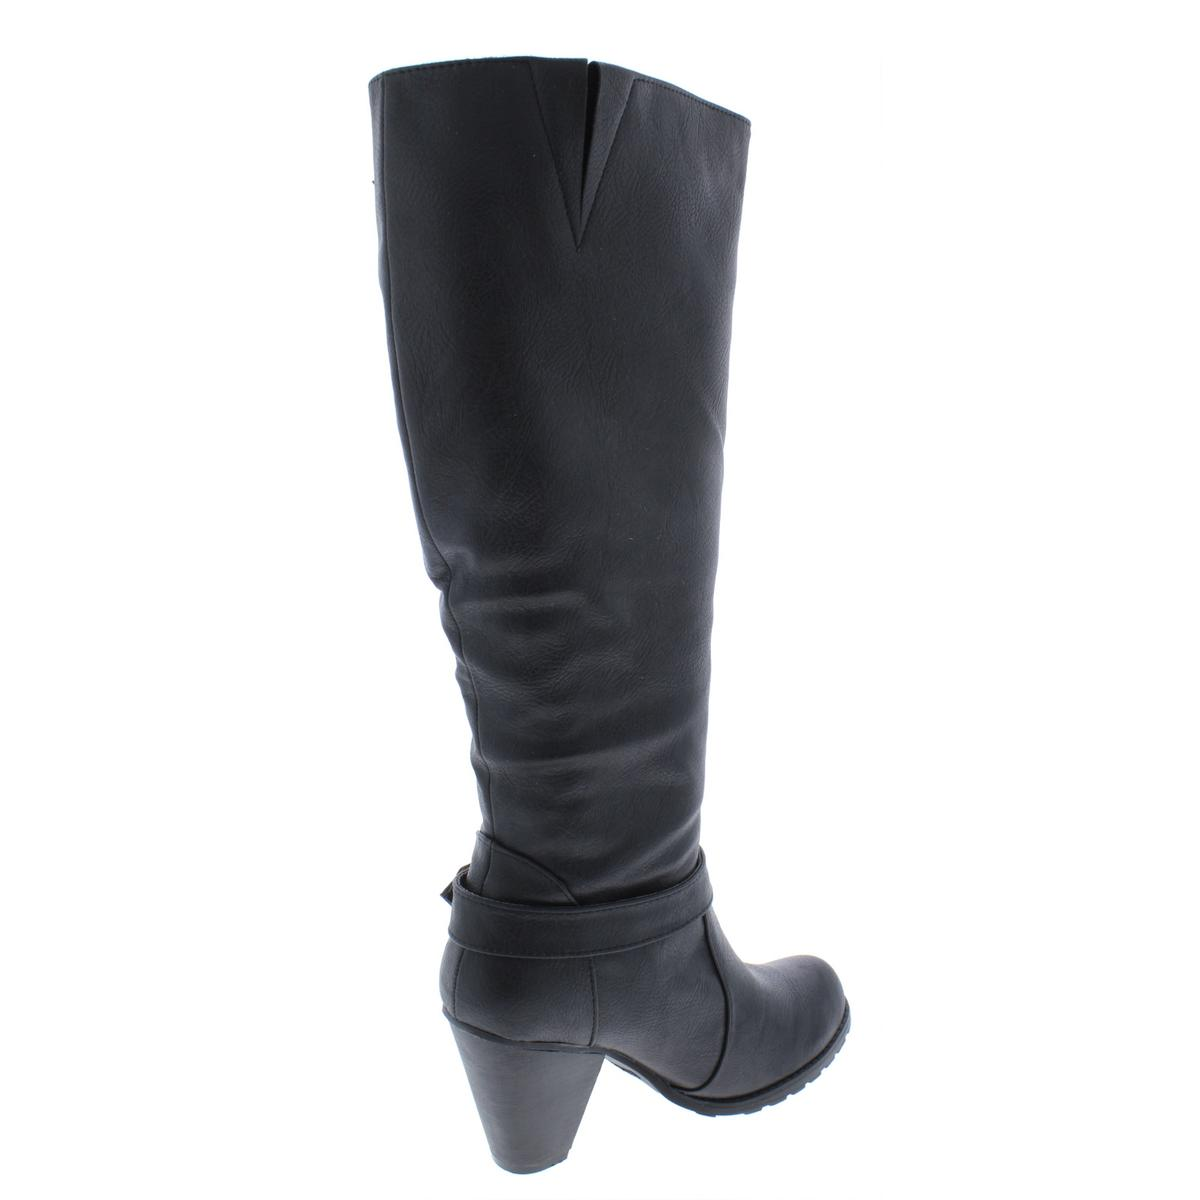 72c3faef050 Details about Relativity Womens Calyn Black Knee-High Boots Shoes 8.5  Medium (B